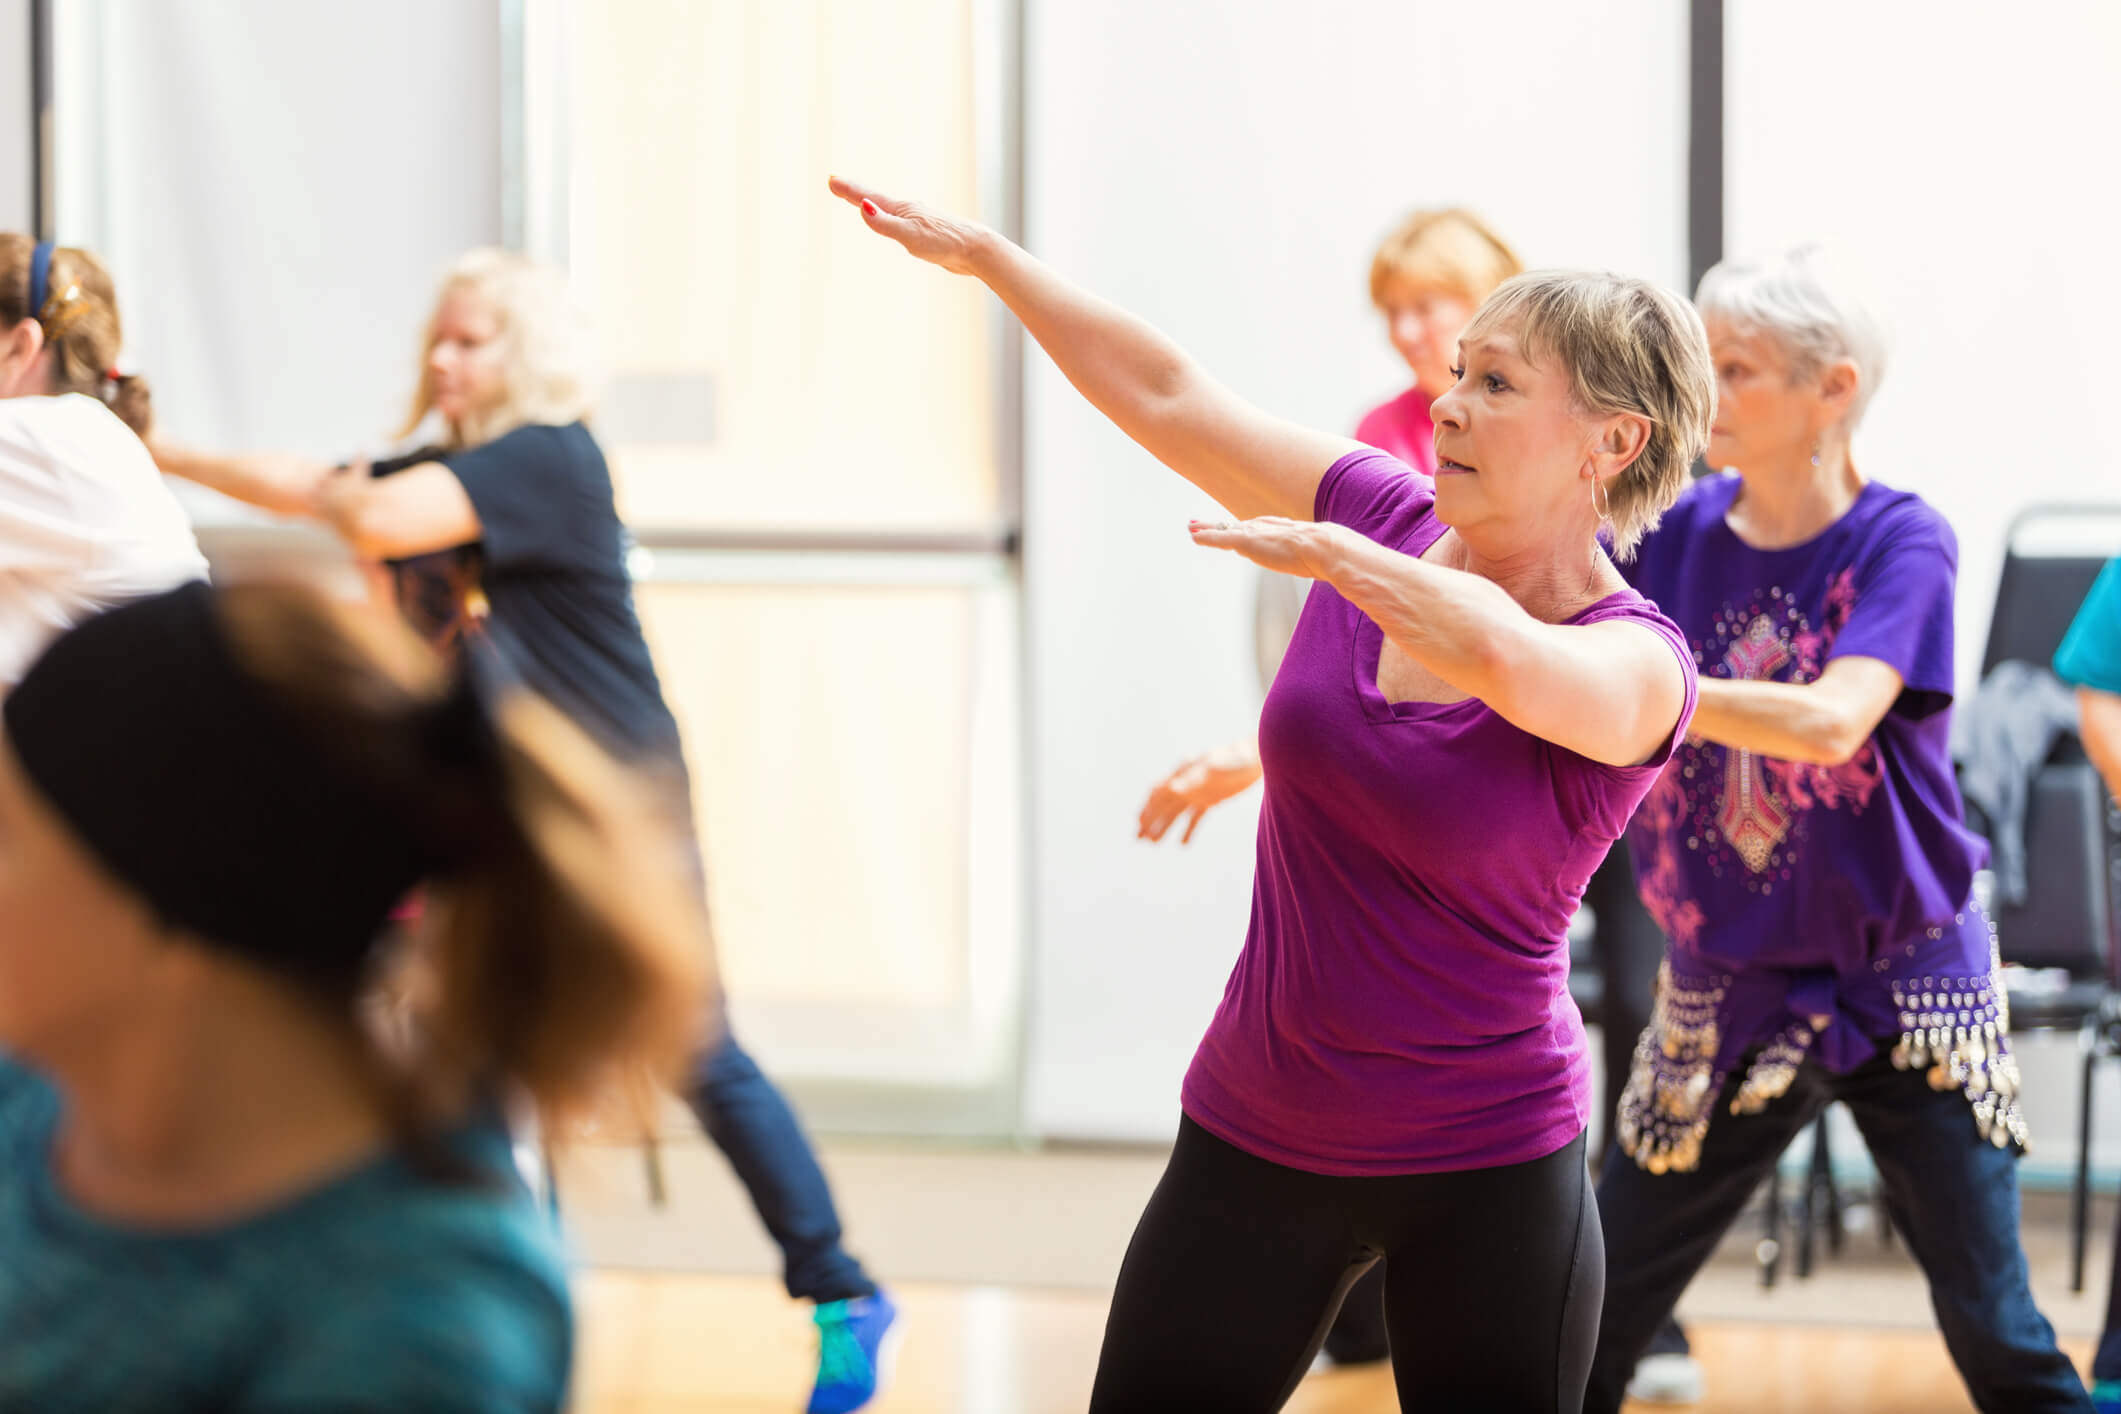 What Makes Dance a Great Form of Exercise for Seniors?